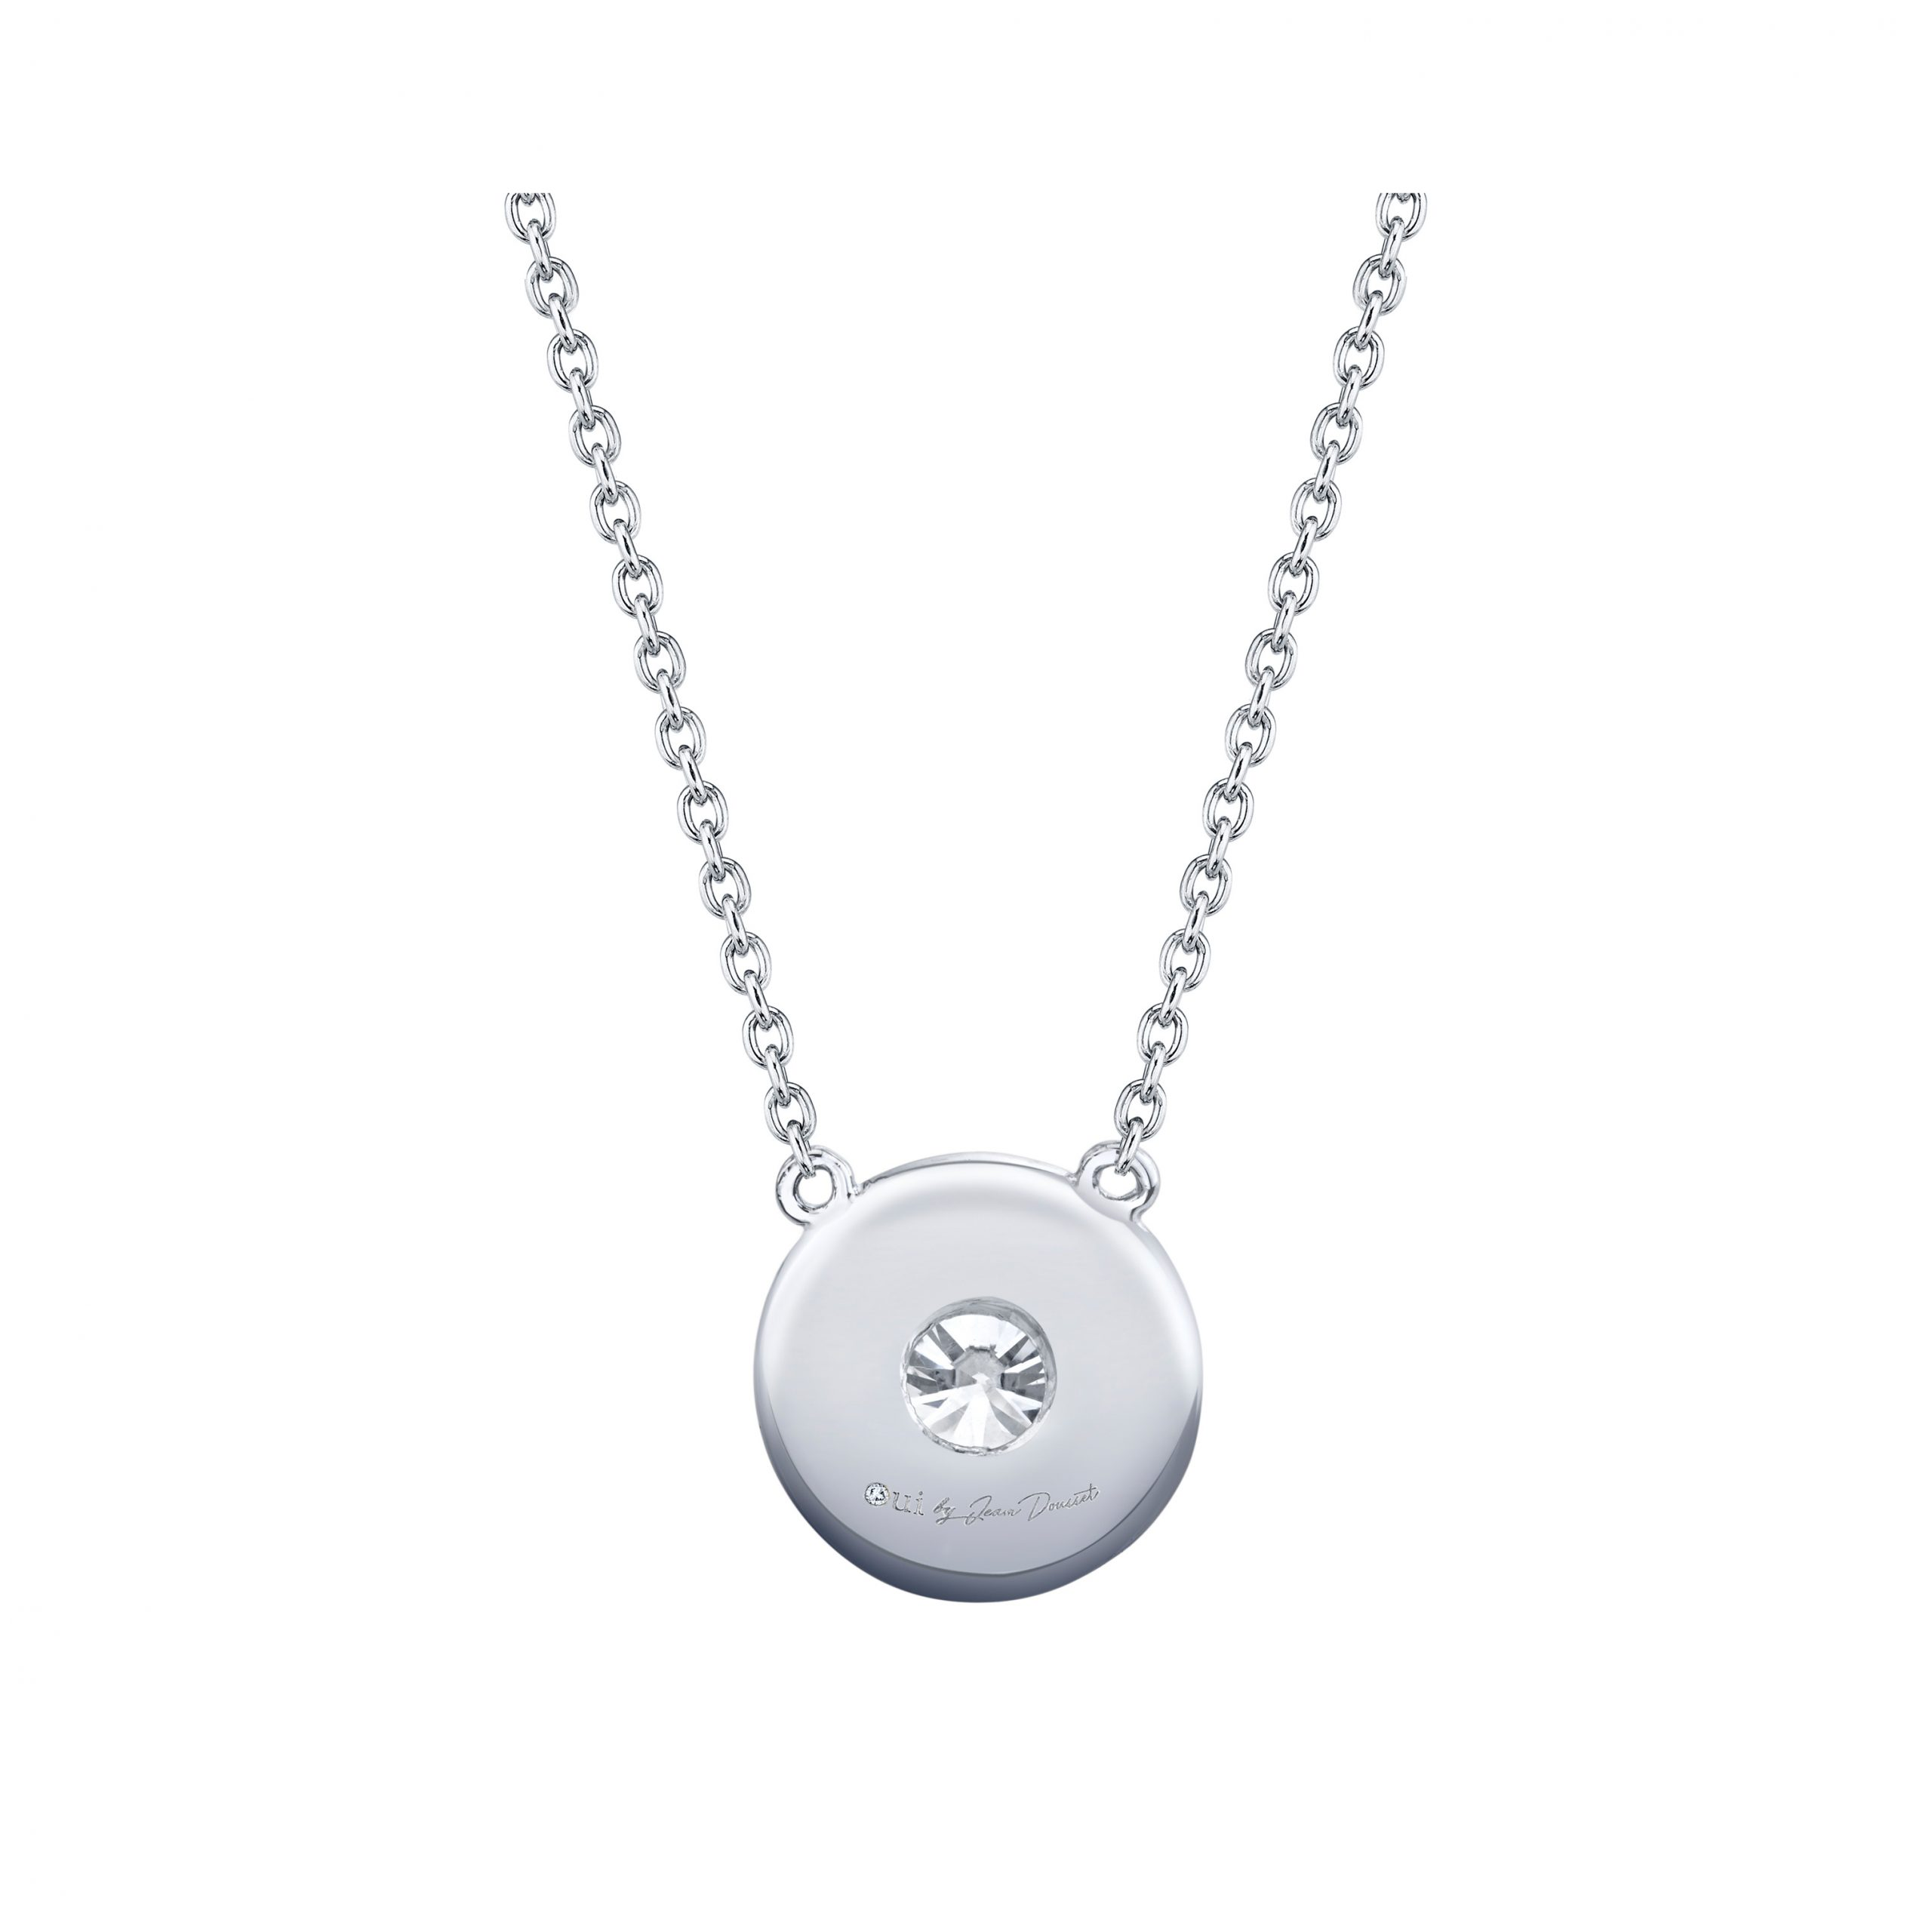 Lucile Round Brilliant Seamless Solitaire® Diamond Necklace in 18k White Gold Back Shot by Oui by Jean Dousset